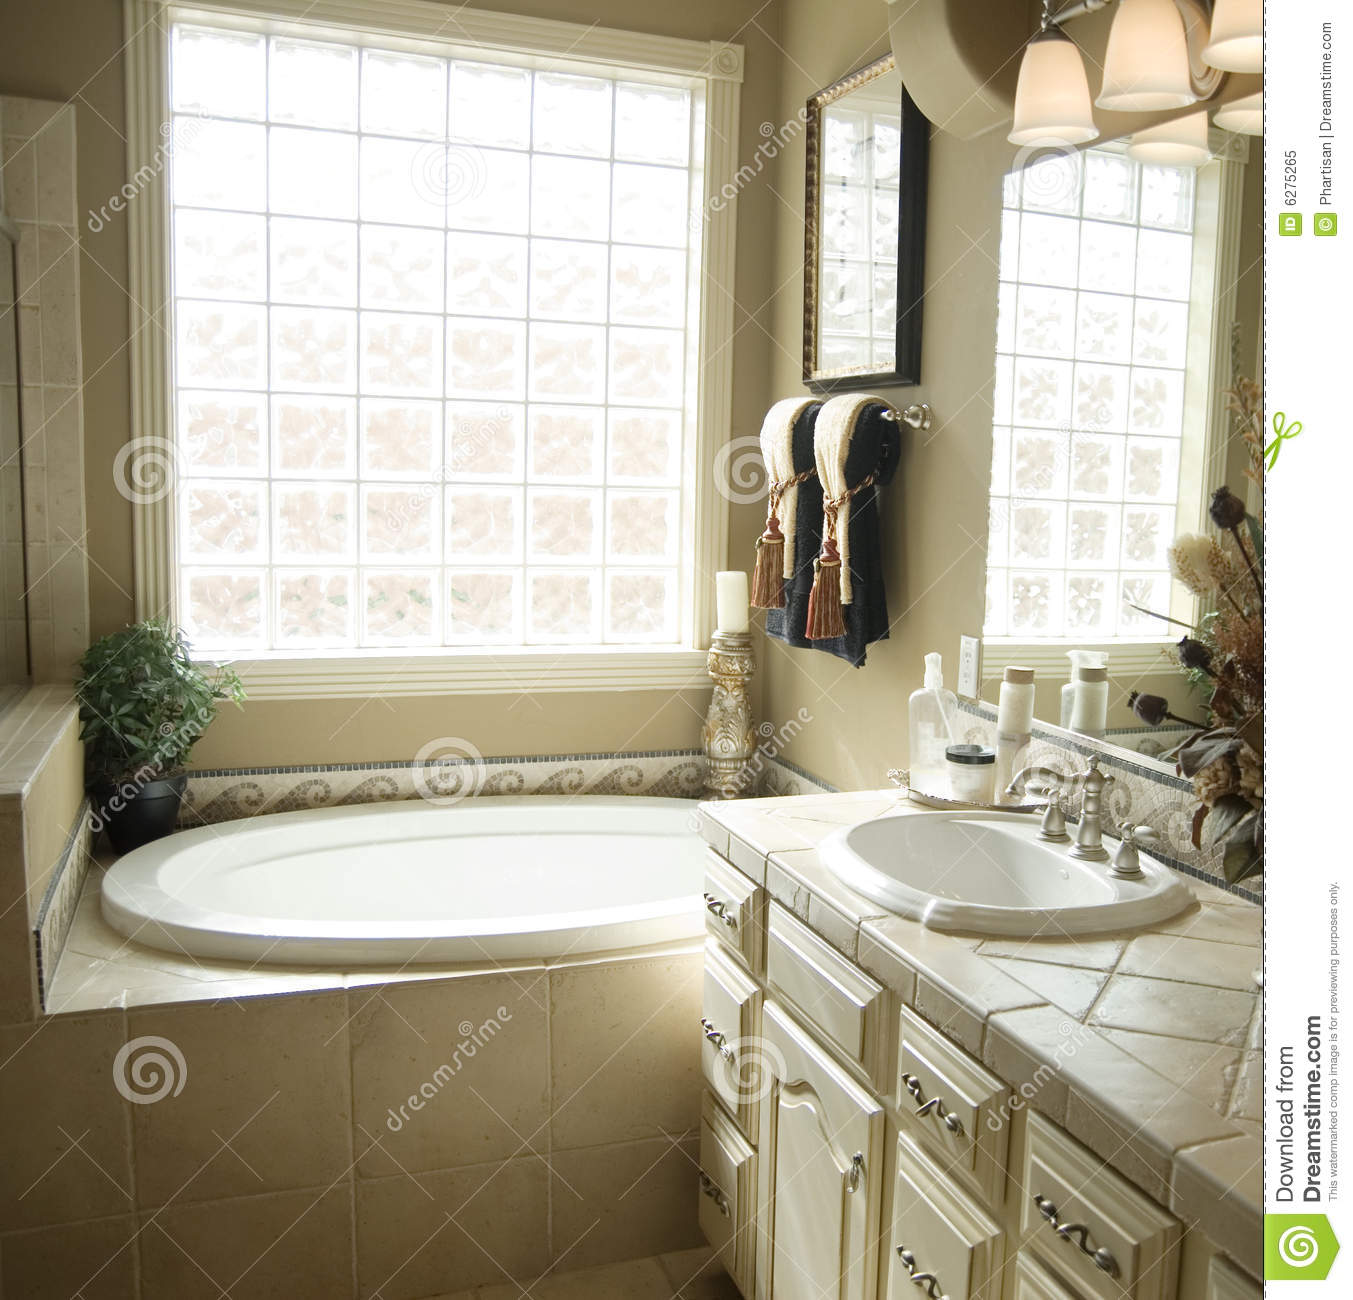 Beautiful bathroom interior design stock image image for Pictures of beautiful bathroom designs